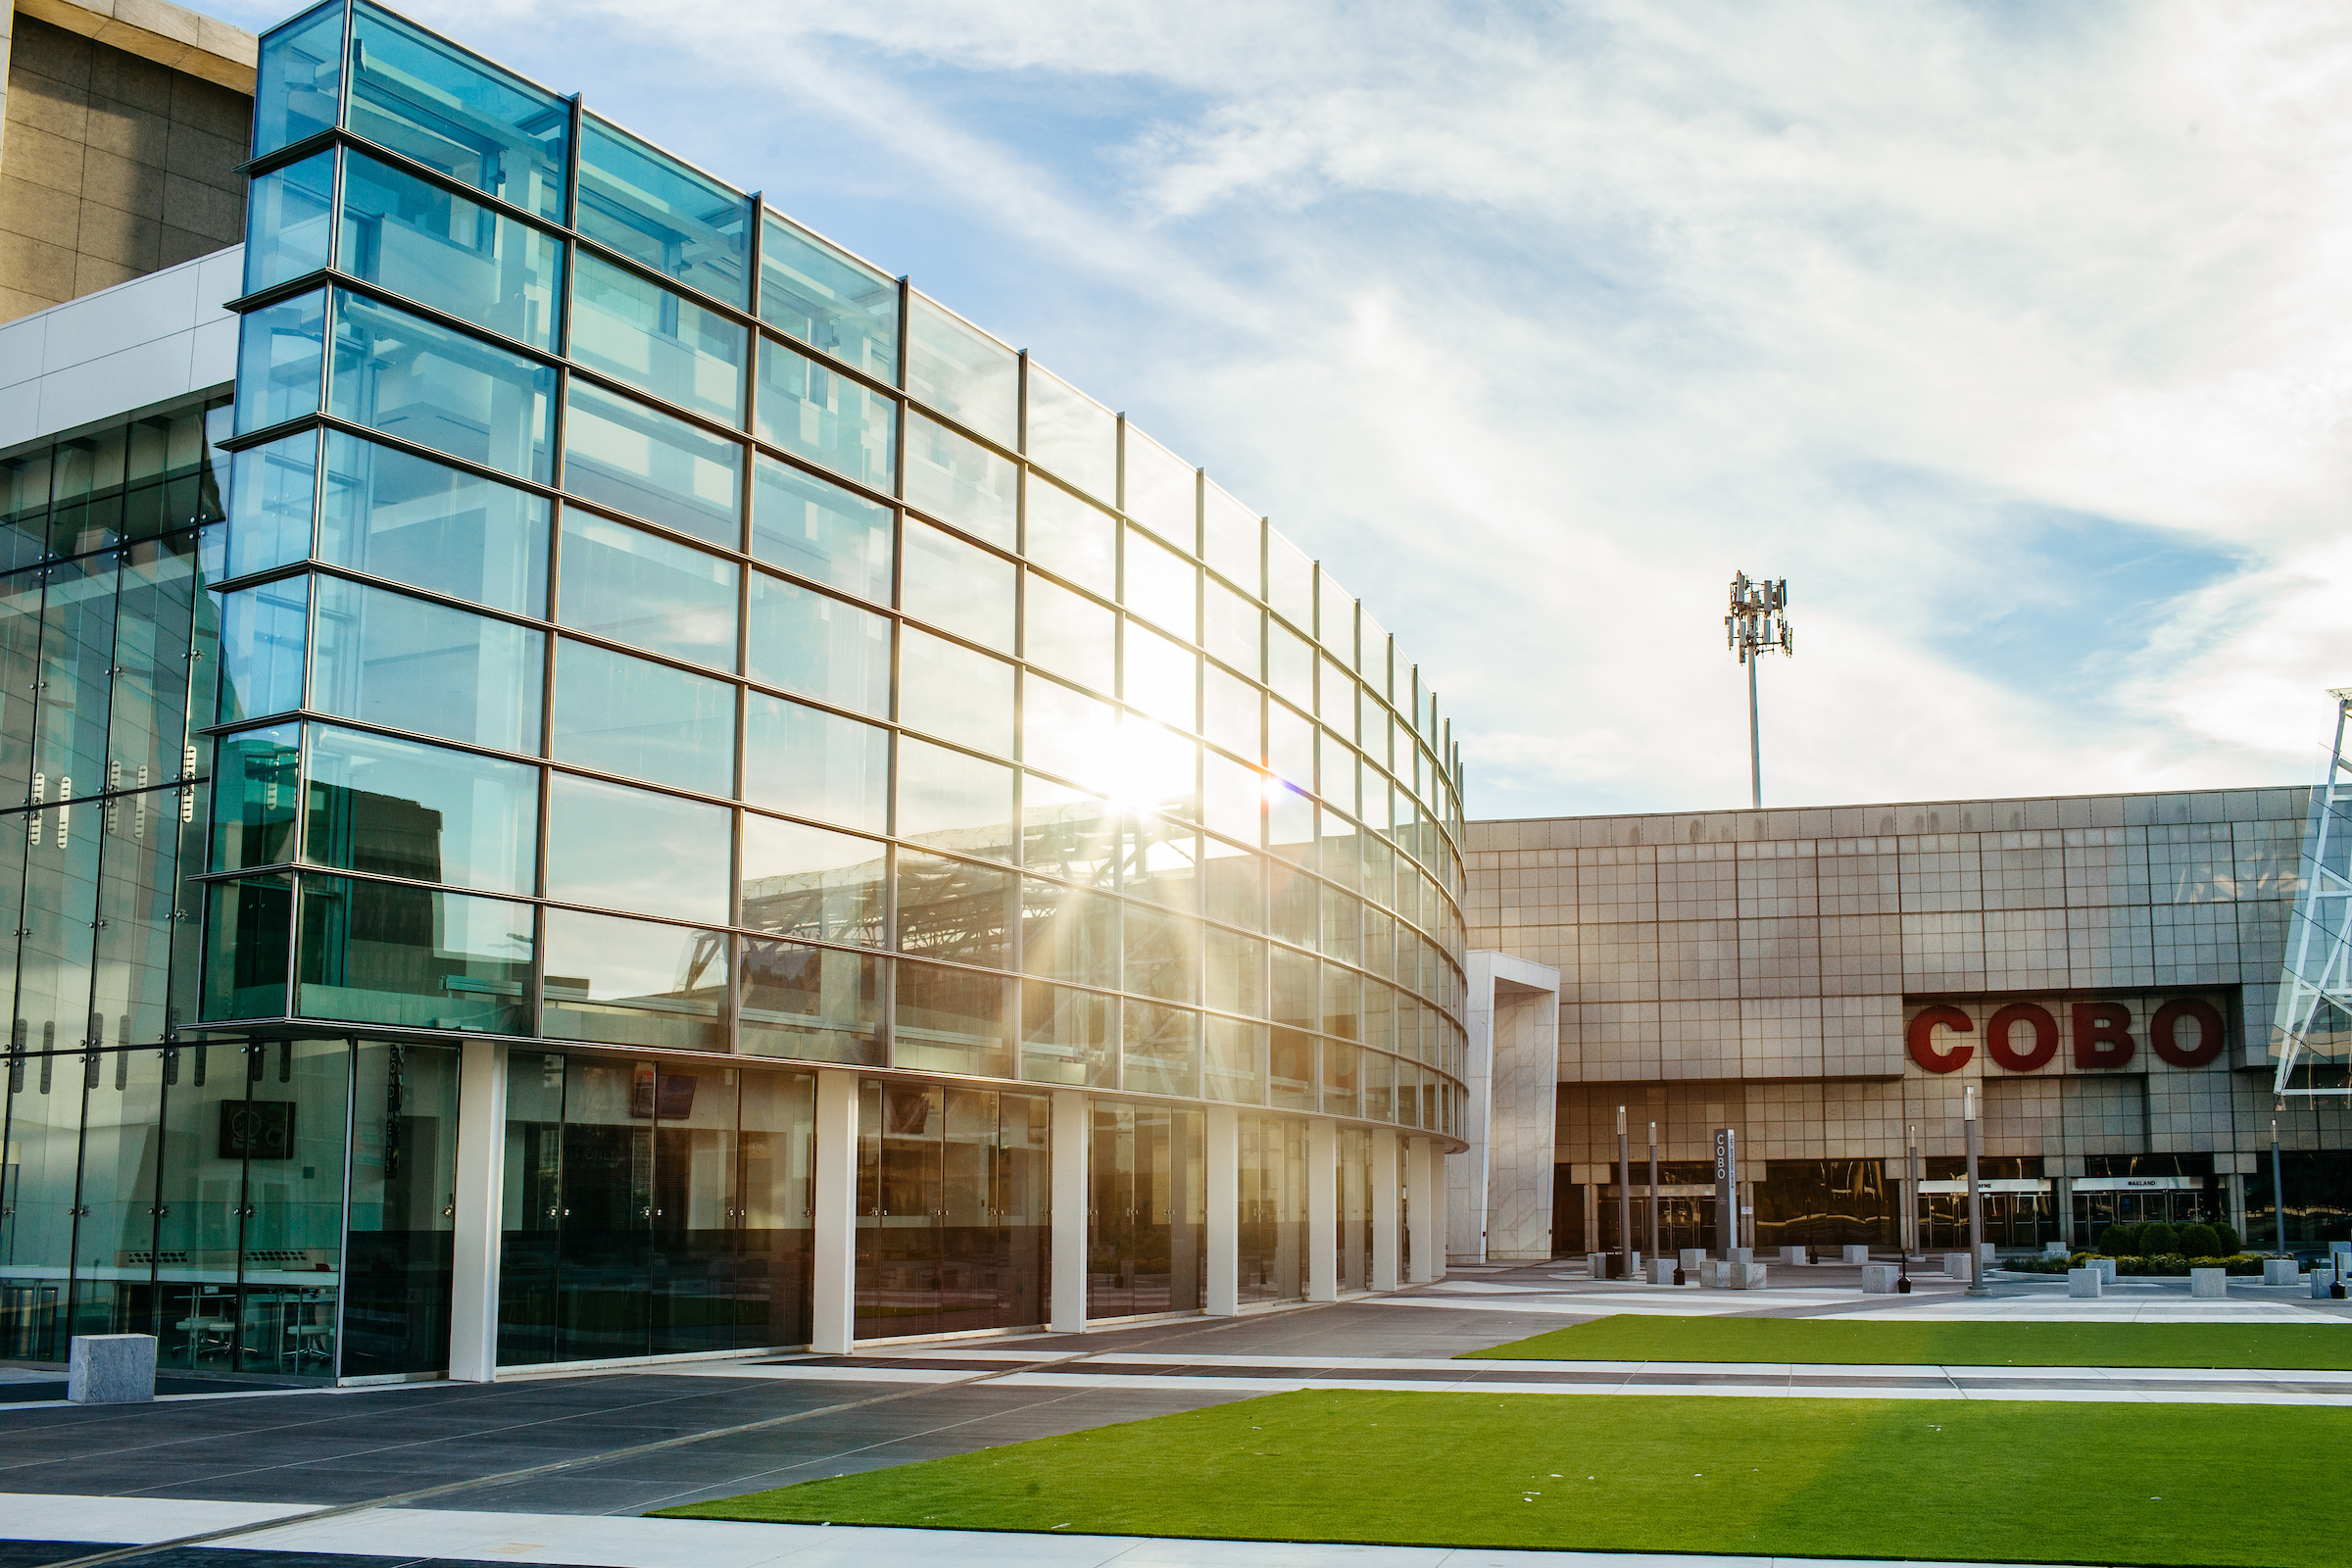 The glass and steel block exterior of the Cobo Center